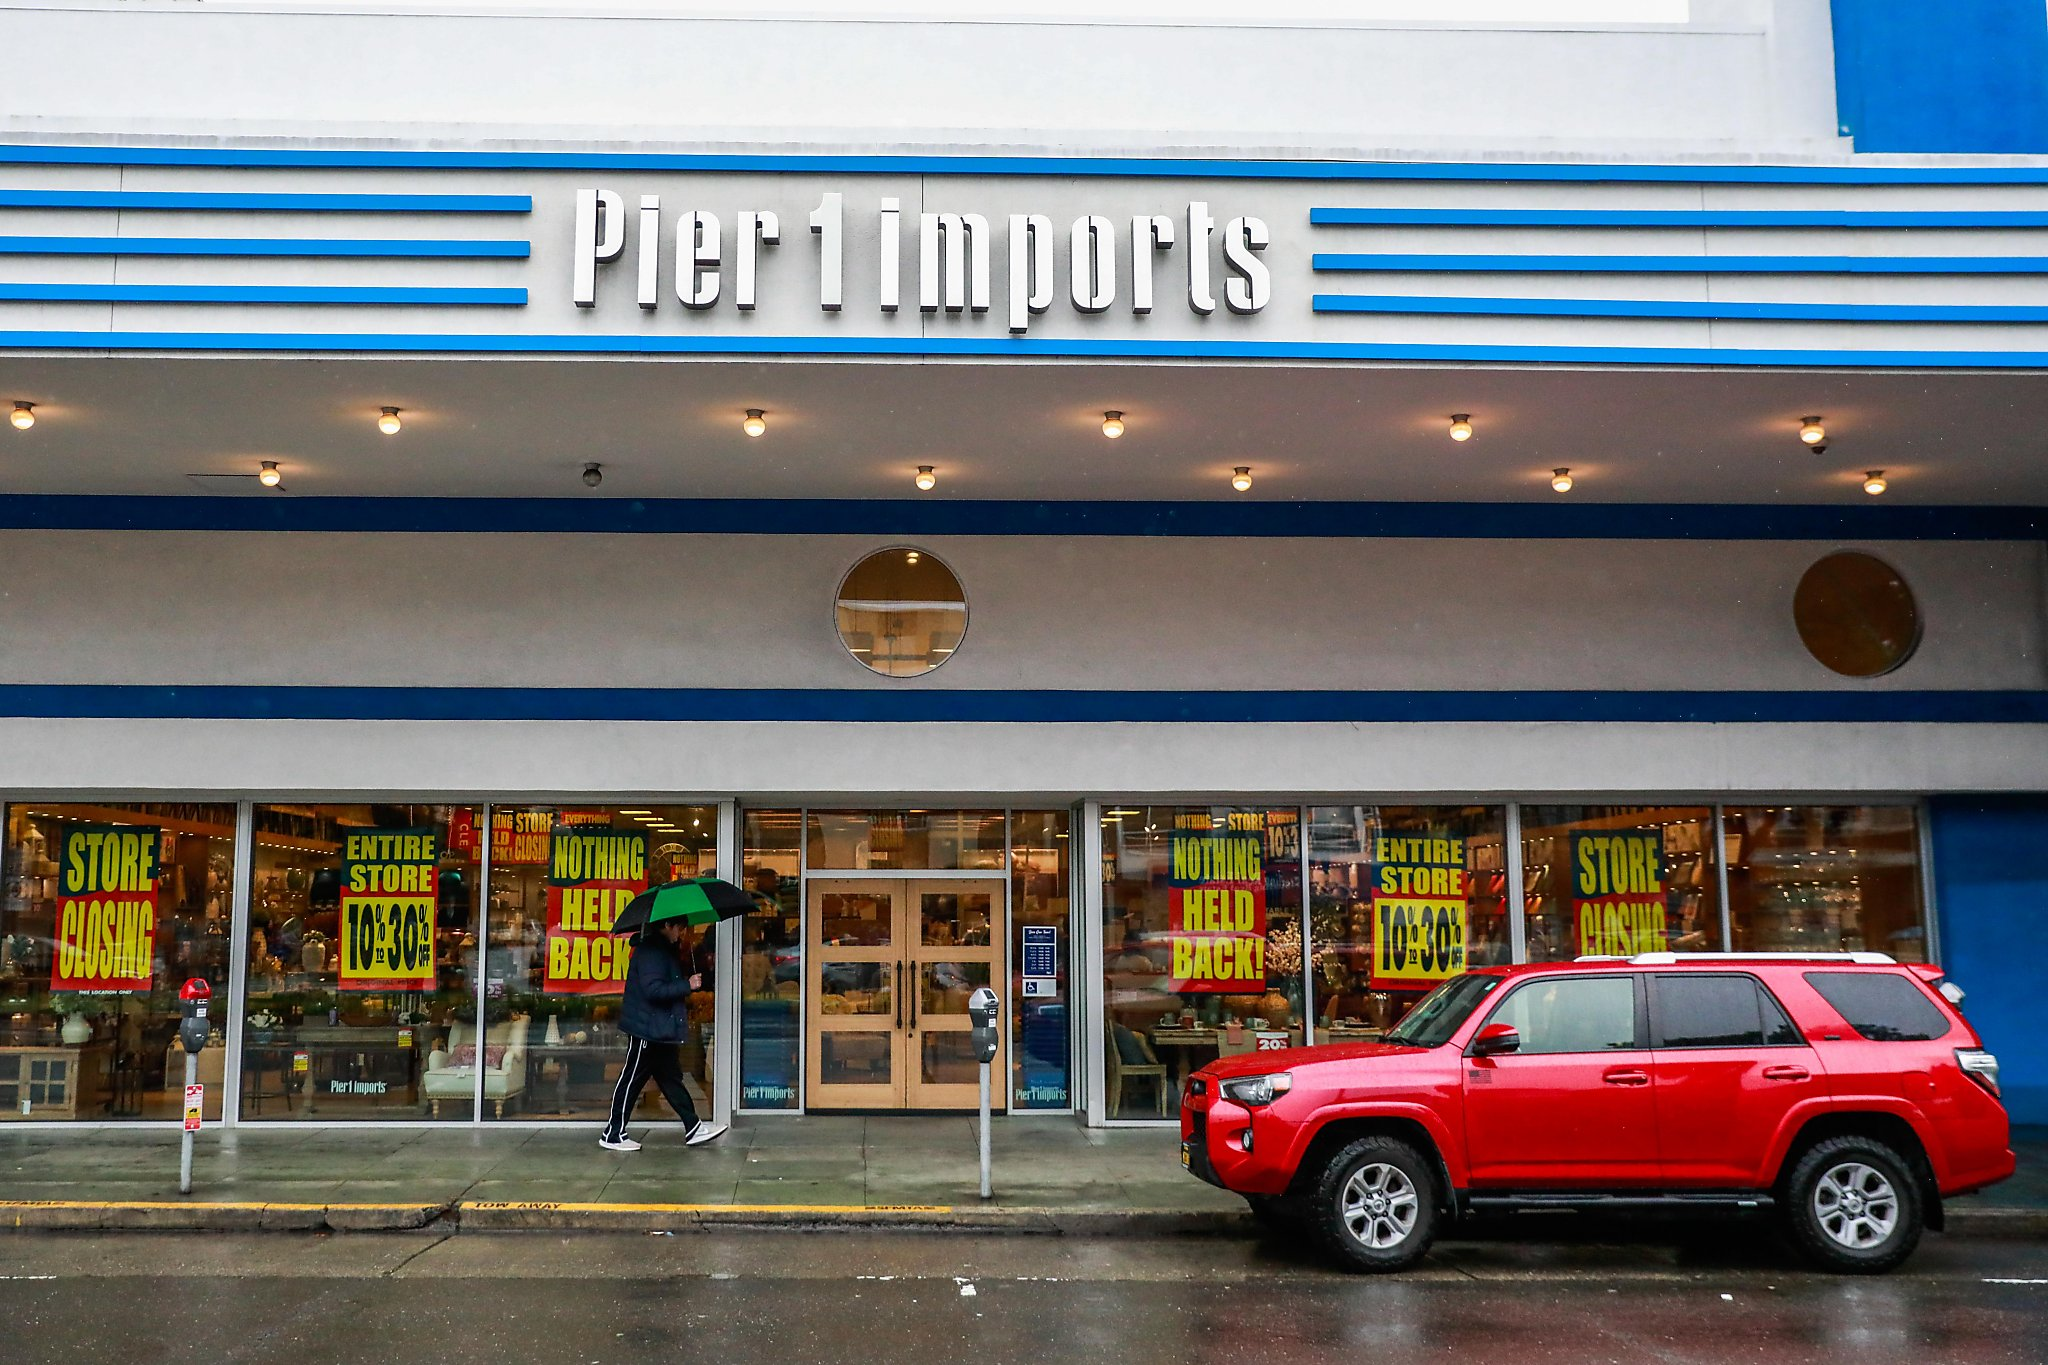 Pier 1 files for bankruptcy protection, will pursue a sale